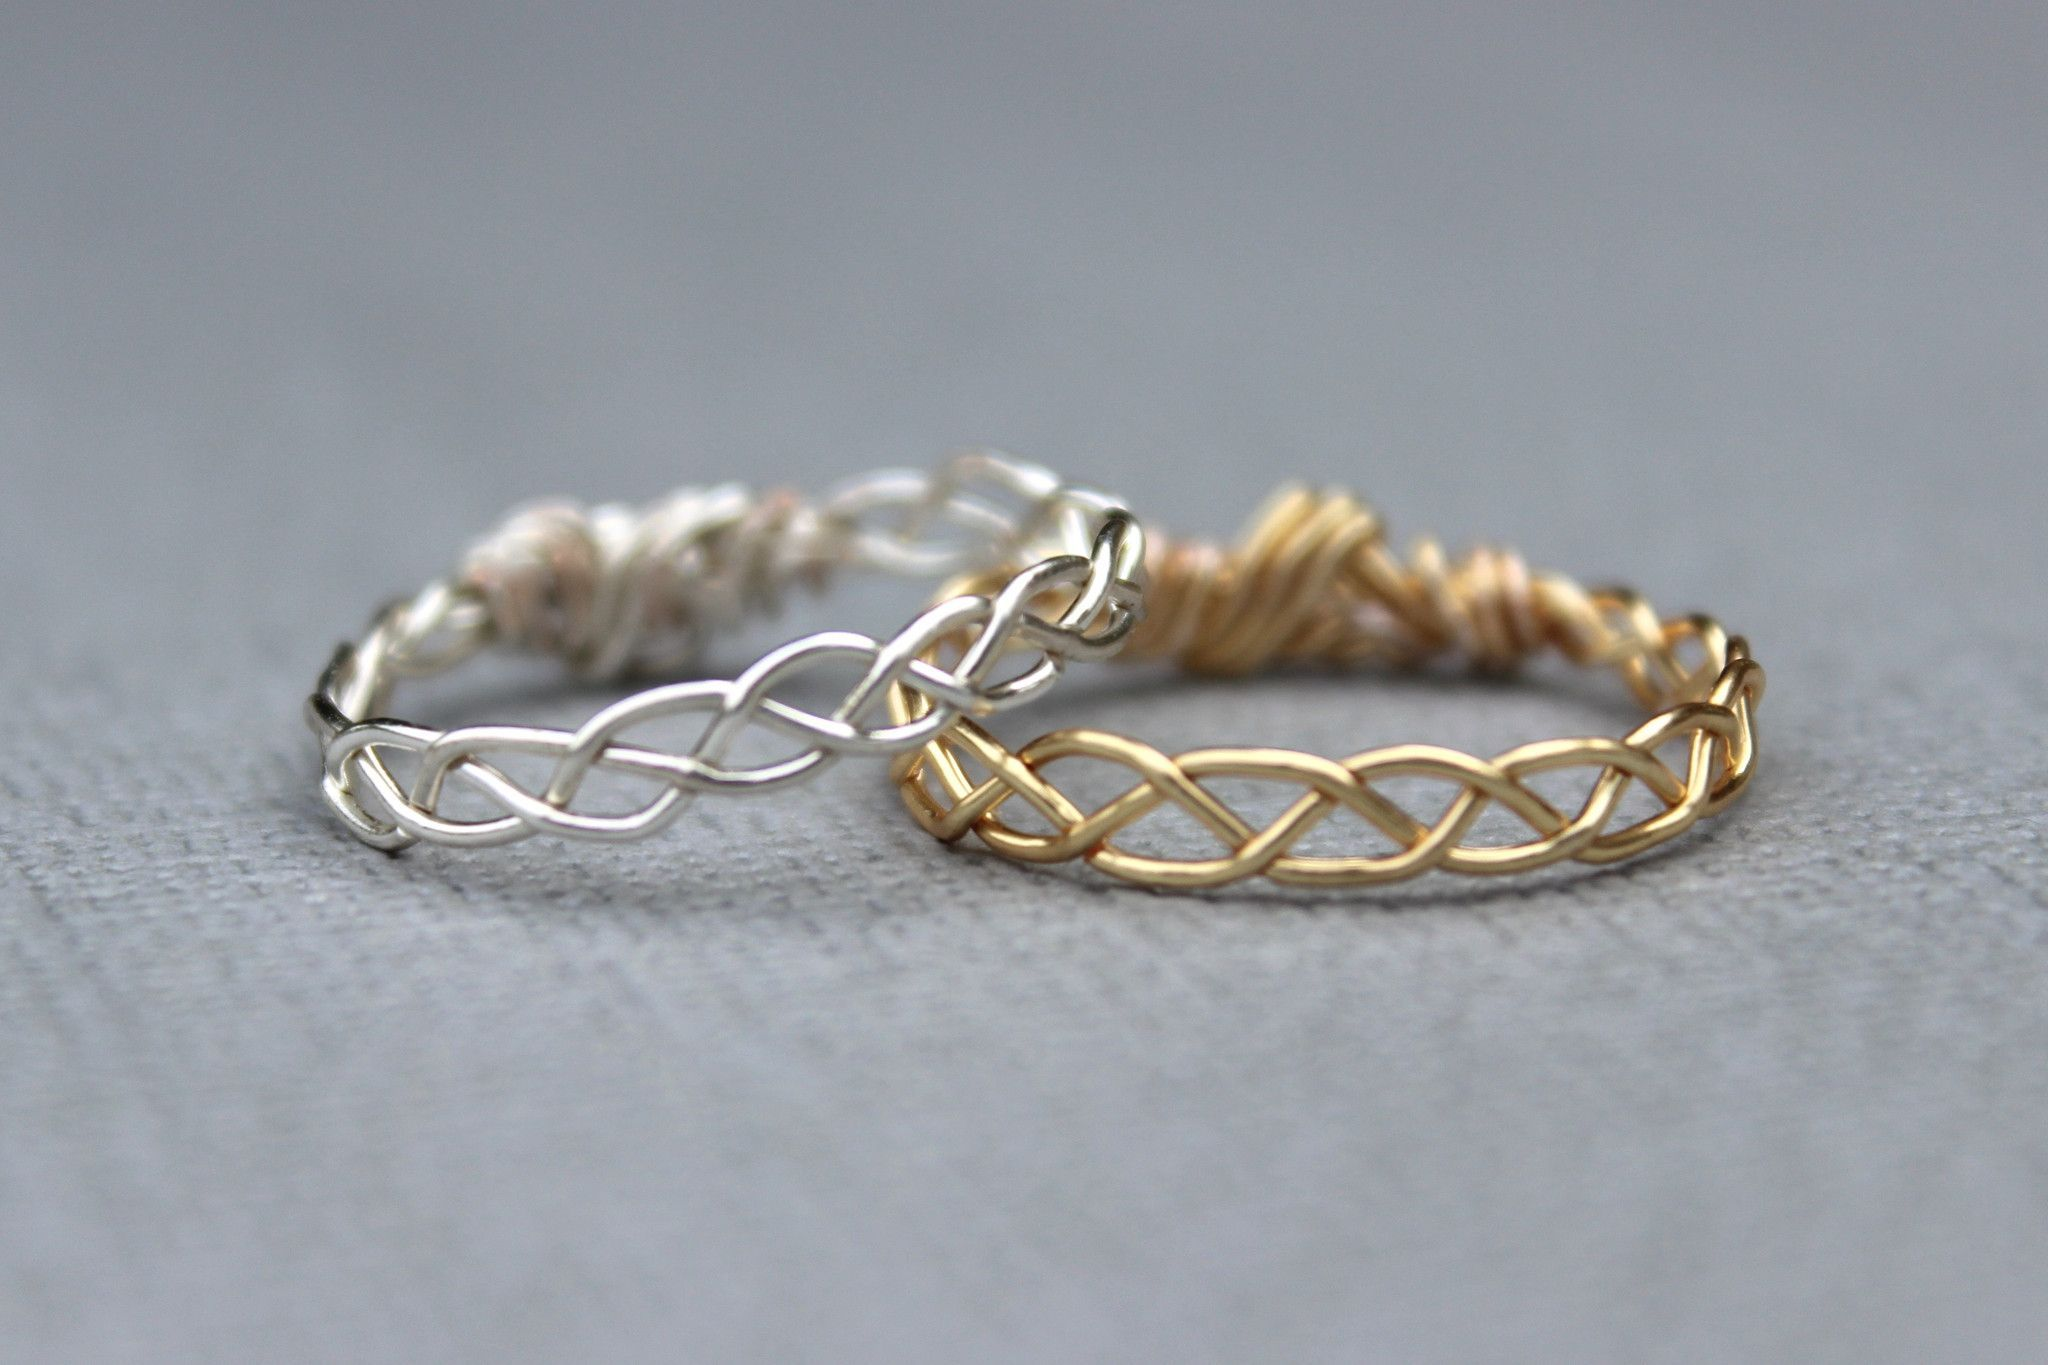 Braided Bands | Braids band, Tarnished silver and Wire wrapping